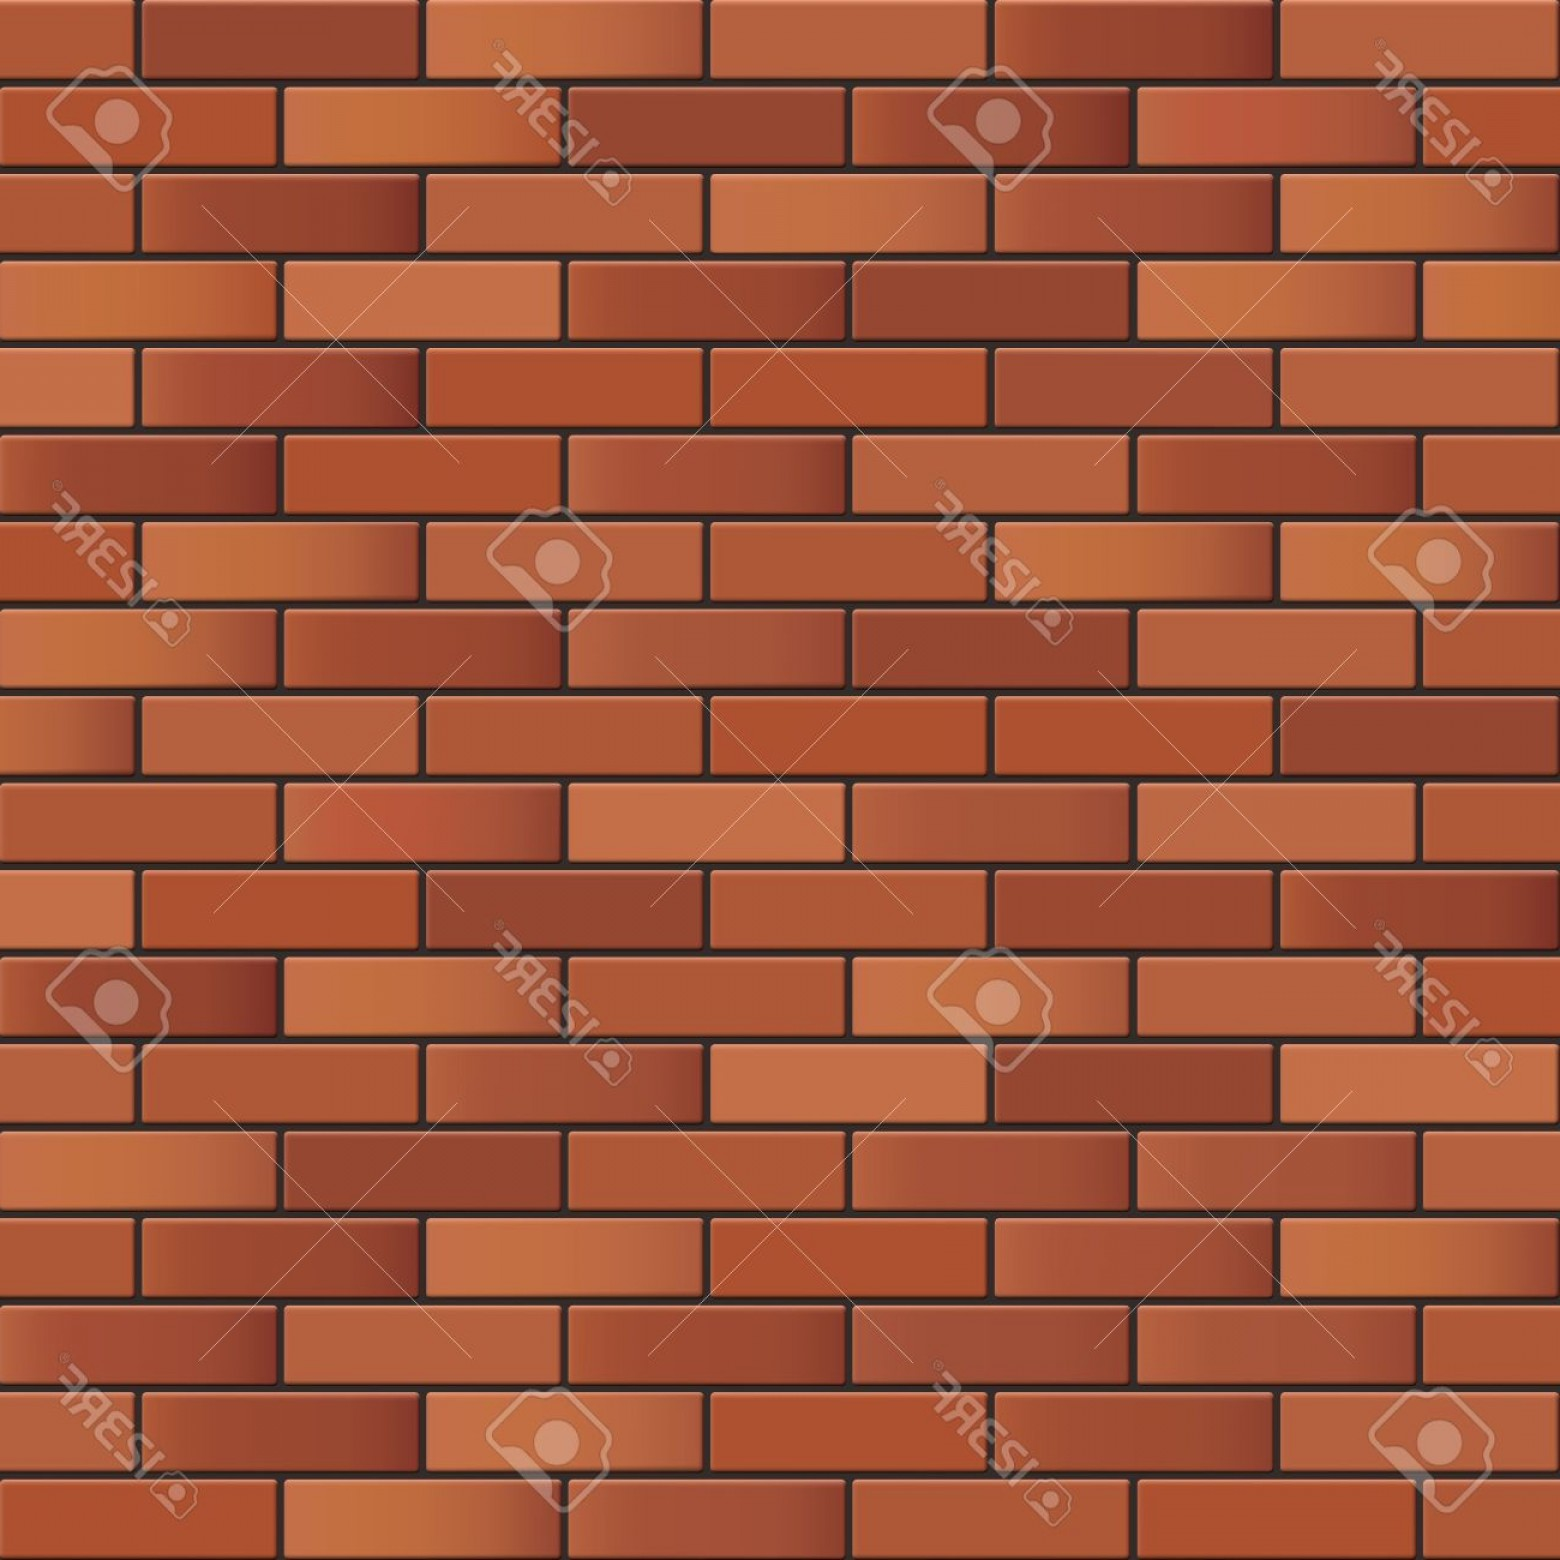 Wall Background Vector: Photostock Vector Seamless Brick Wall Background Vector Texture For Continuous Replicate